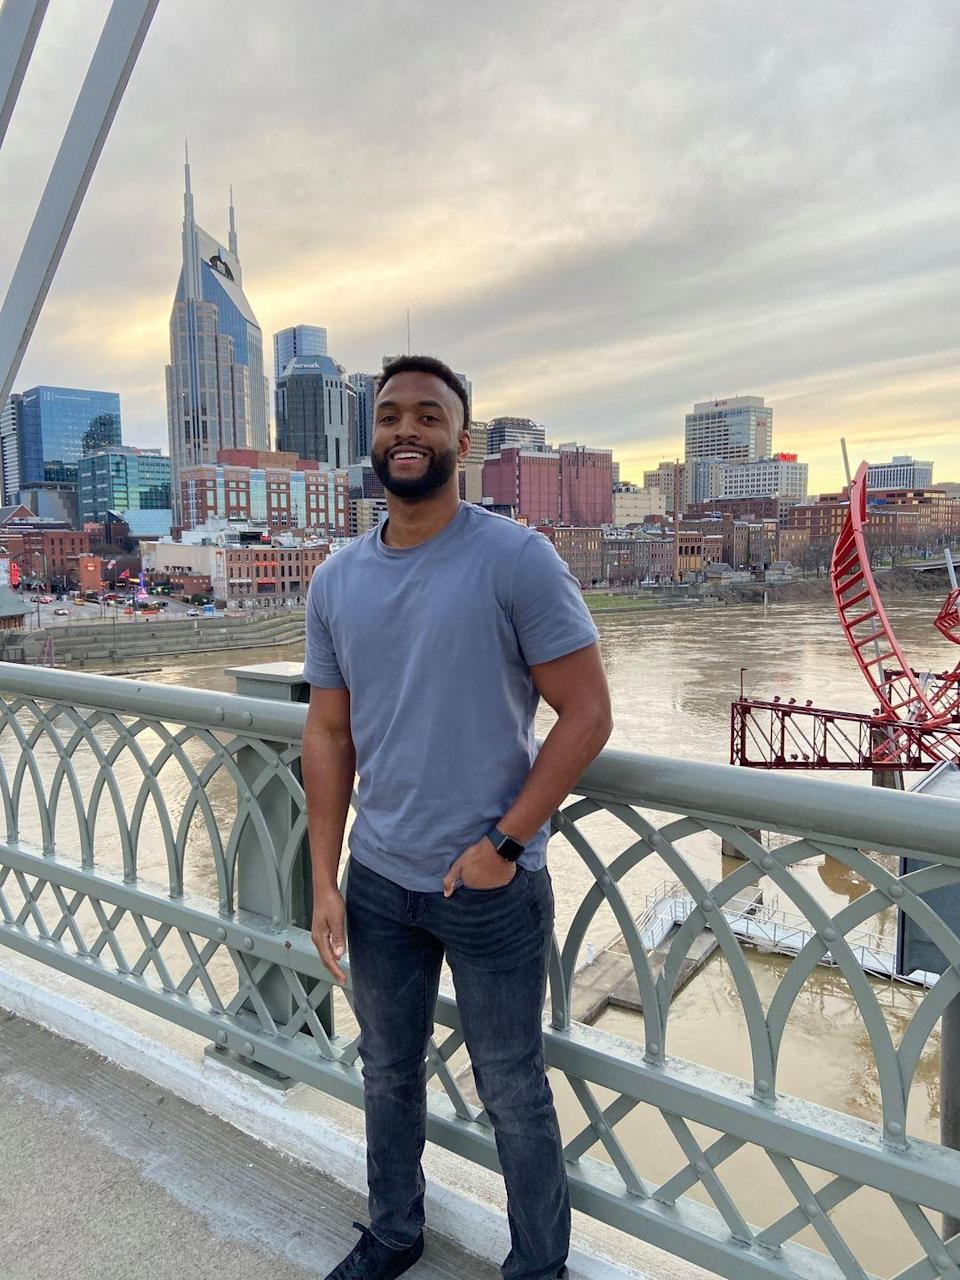 """<p>Don't let the background fool you, David is from New York but lives in Nashville these days. He works as a technical product specialist for Dell.</p><p><strong>Age: 27</strong></p><p><strong>Hometown: New York, NY</strong></p><p><strong>Instagram: <a href=""""https://www.instagram.com/dscott530/"""" rel=""""nofollow noopener"""" target=""""_blank"""" data-ylk=""""slk:@dscott530"""" class=""""link rapid-noclick-resp"""">@dscott530</a></strong></p>"""